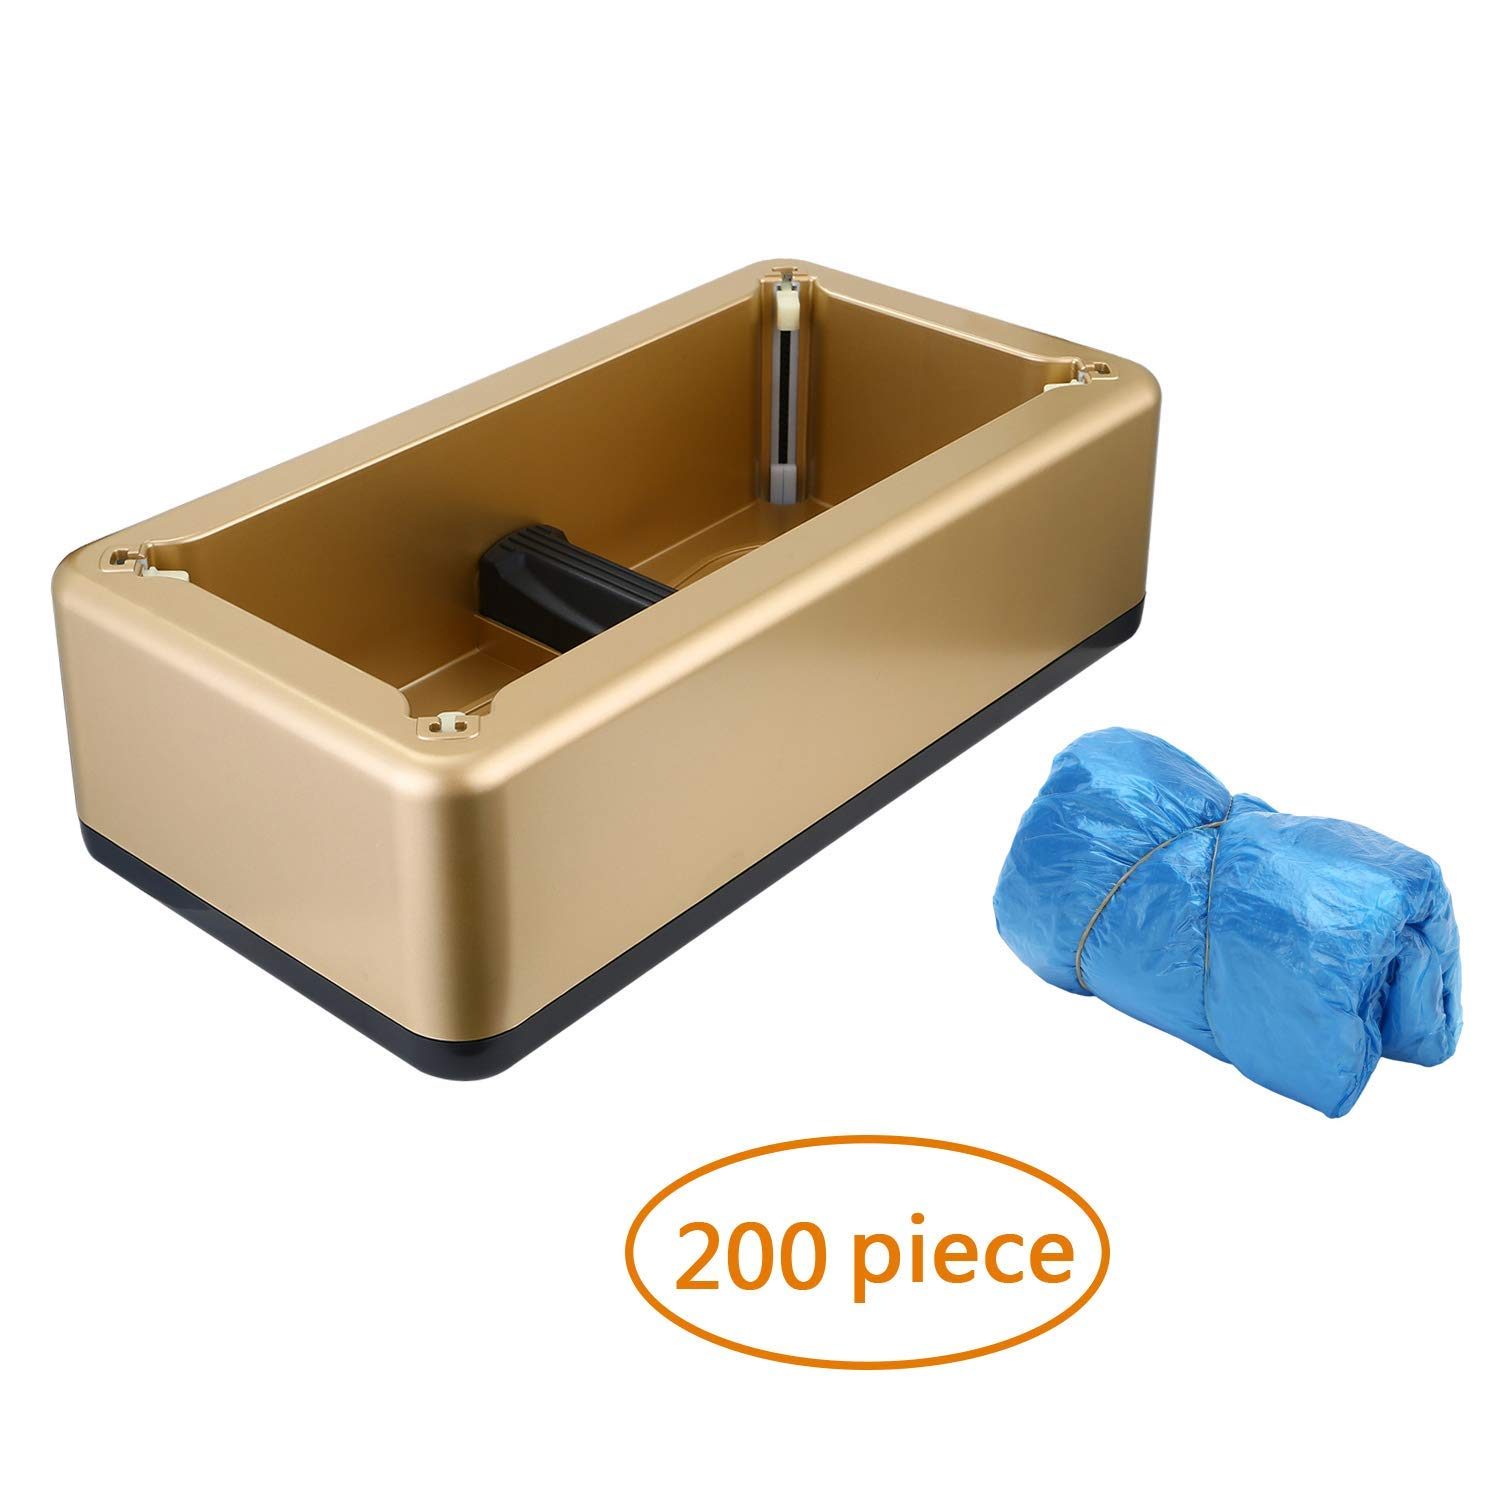 RONRI Automatic Shoe Cover Dispenser With 200 PC Disposable Plastic Shoe Cover, Waterproof Resuable Hands Free Slipcover for Medical, Home, Shop and Office GOLD